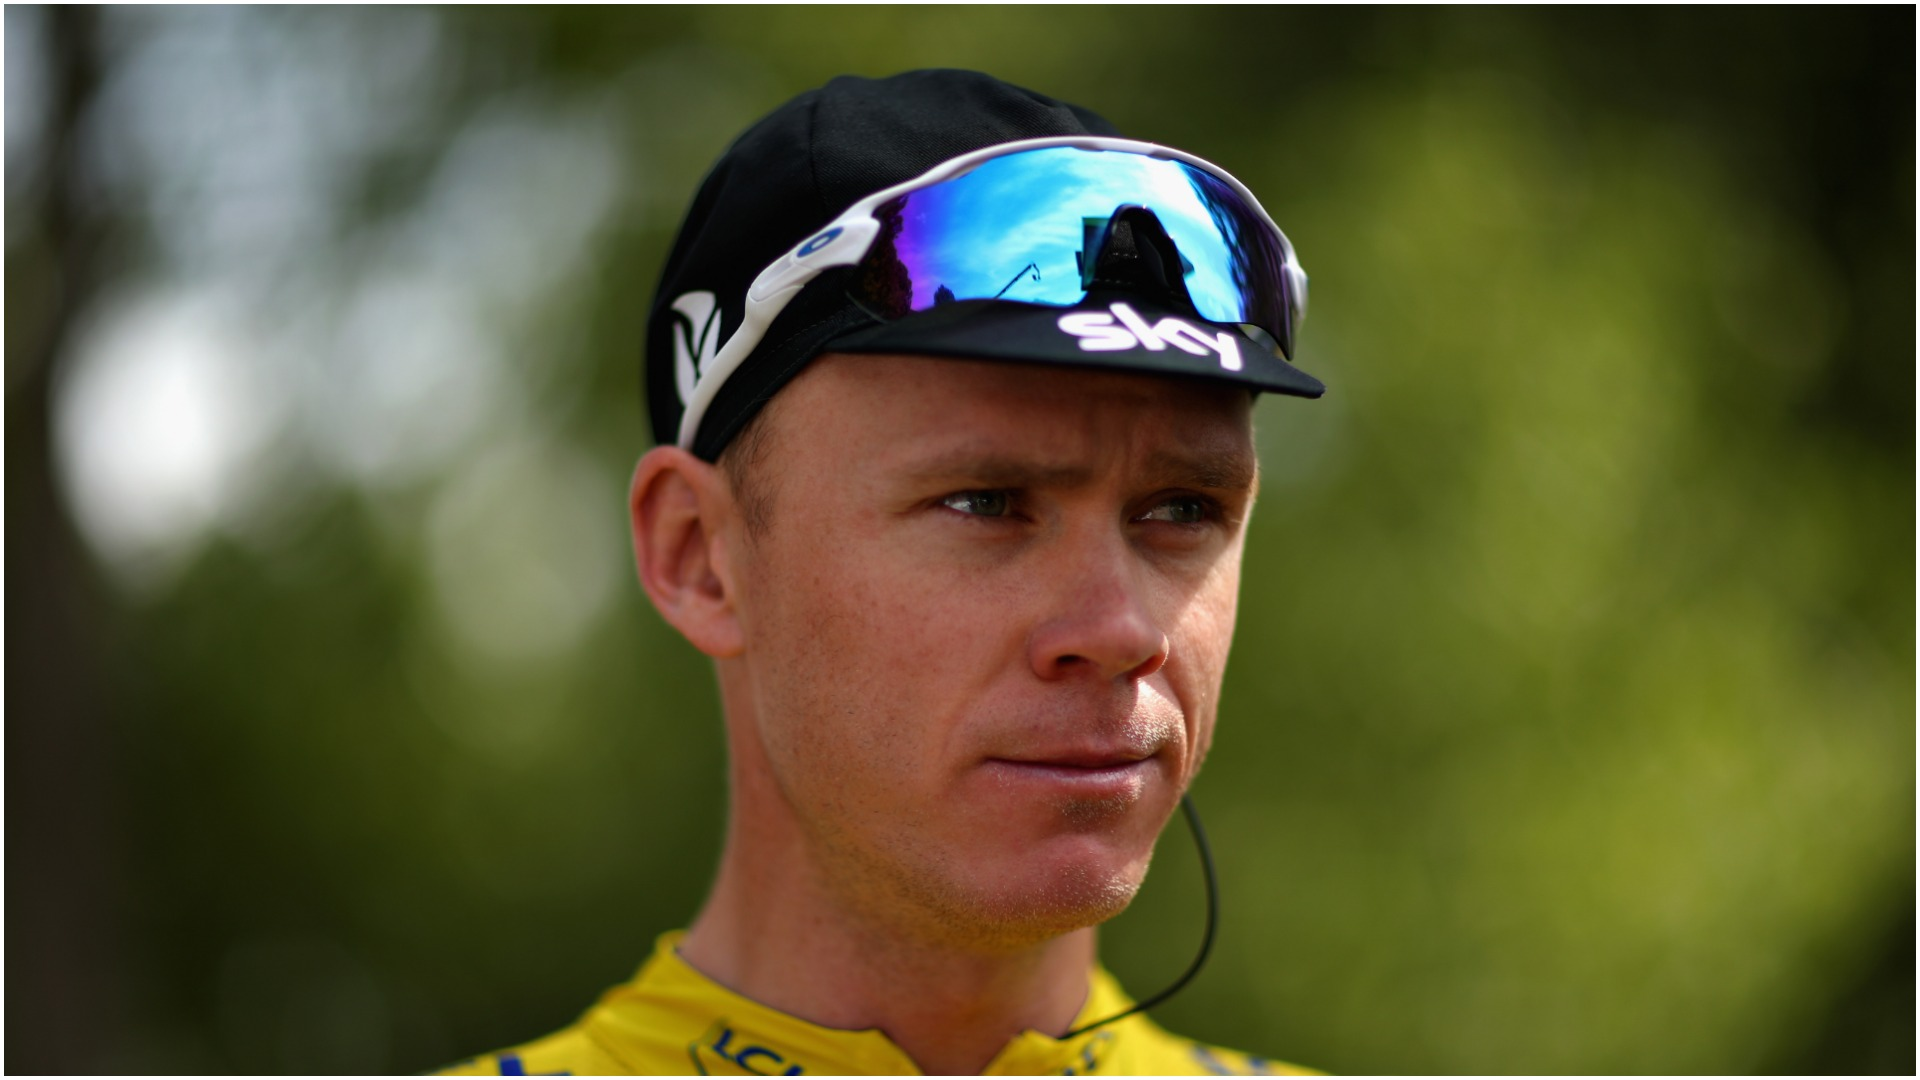 There is light at the end of the tunnel! - Froome steps up return, tipped for Tour de France